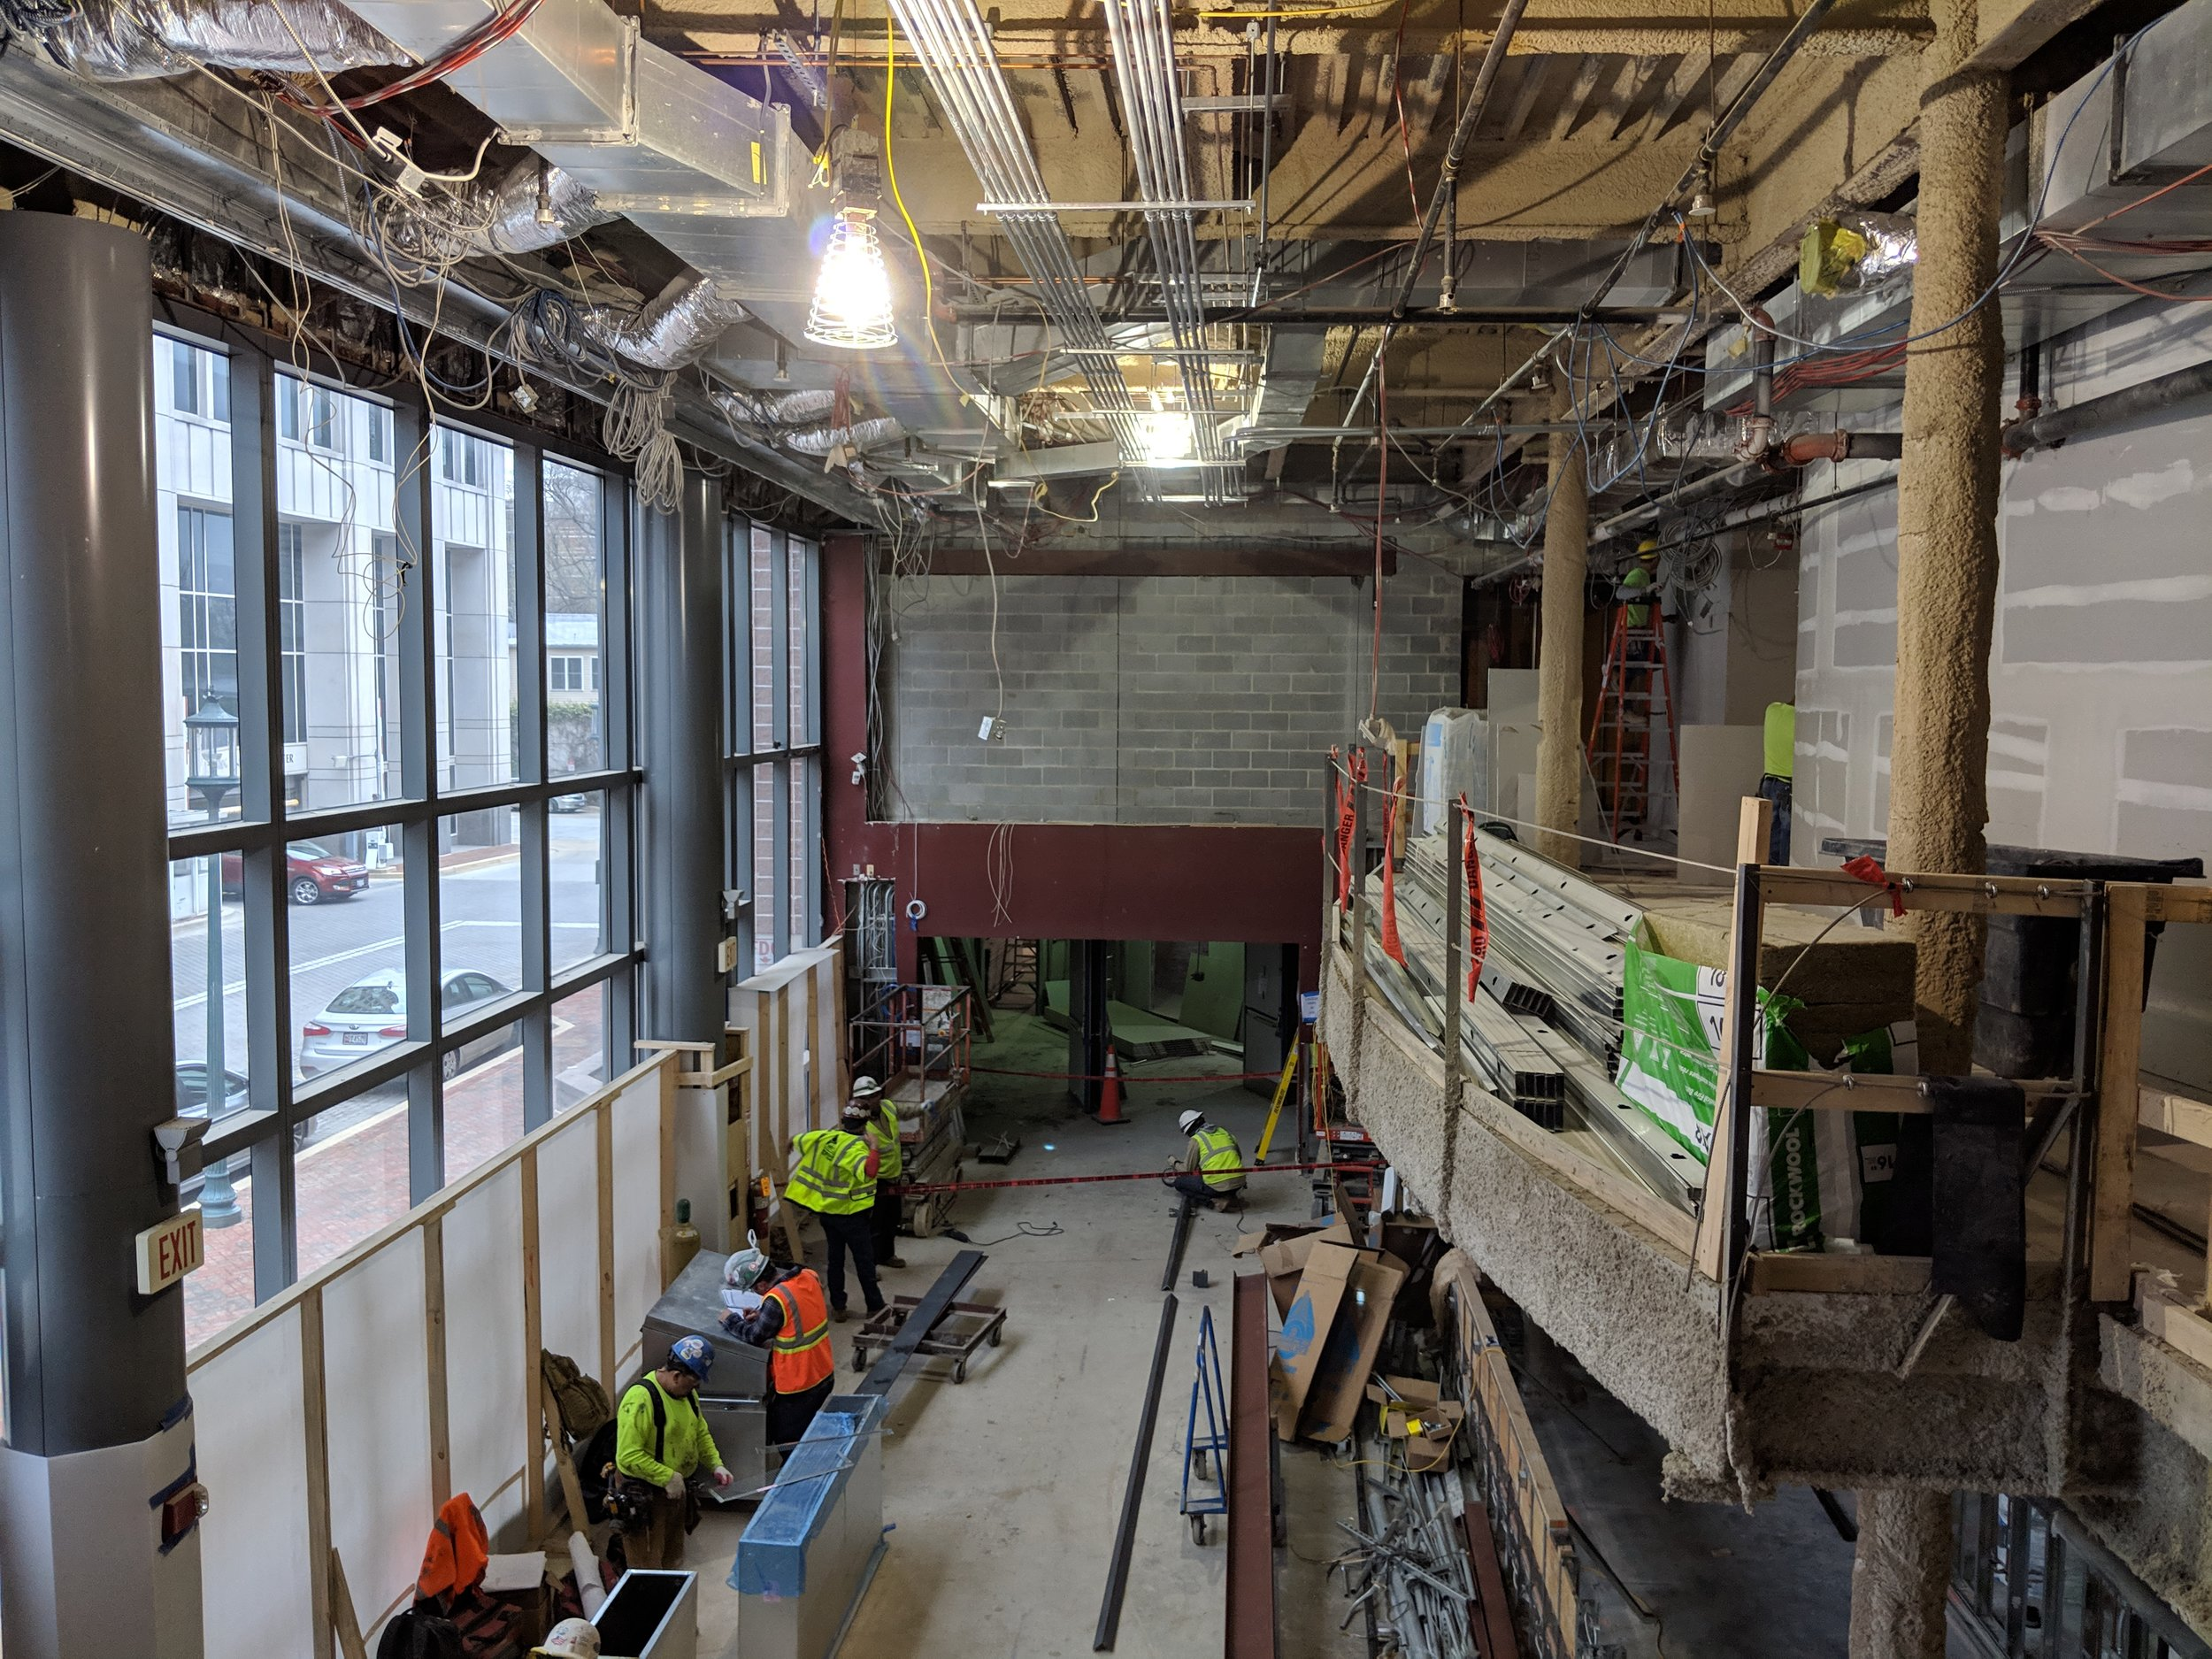 March 2019  - From the view at the top of the lobby staircase, you can see the curved balcony over the new café bar.